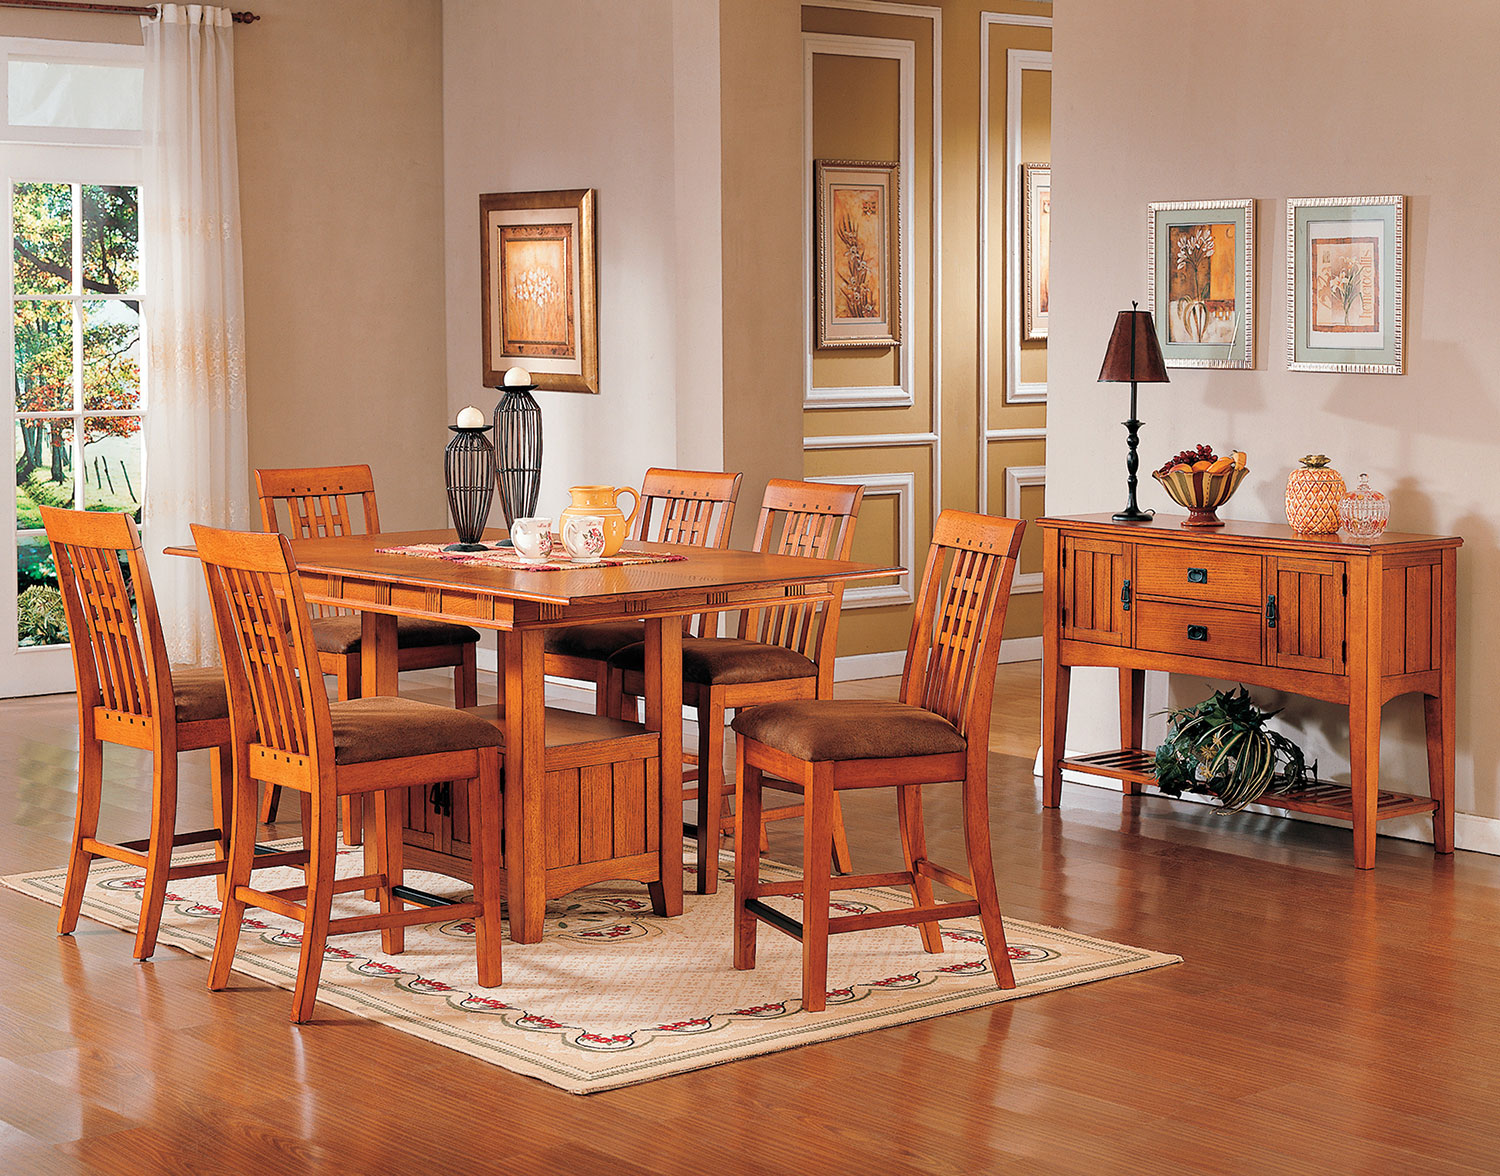 Dining Room Furniture - Oak Park Counter-Height Table and Four Stools - Oak